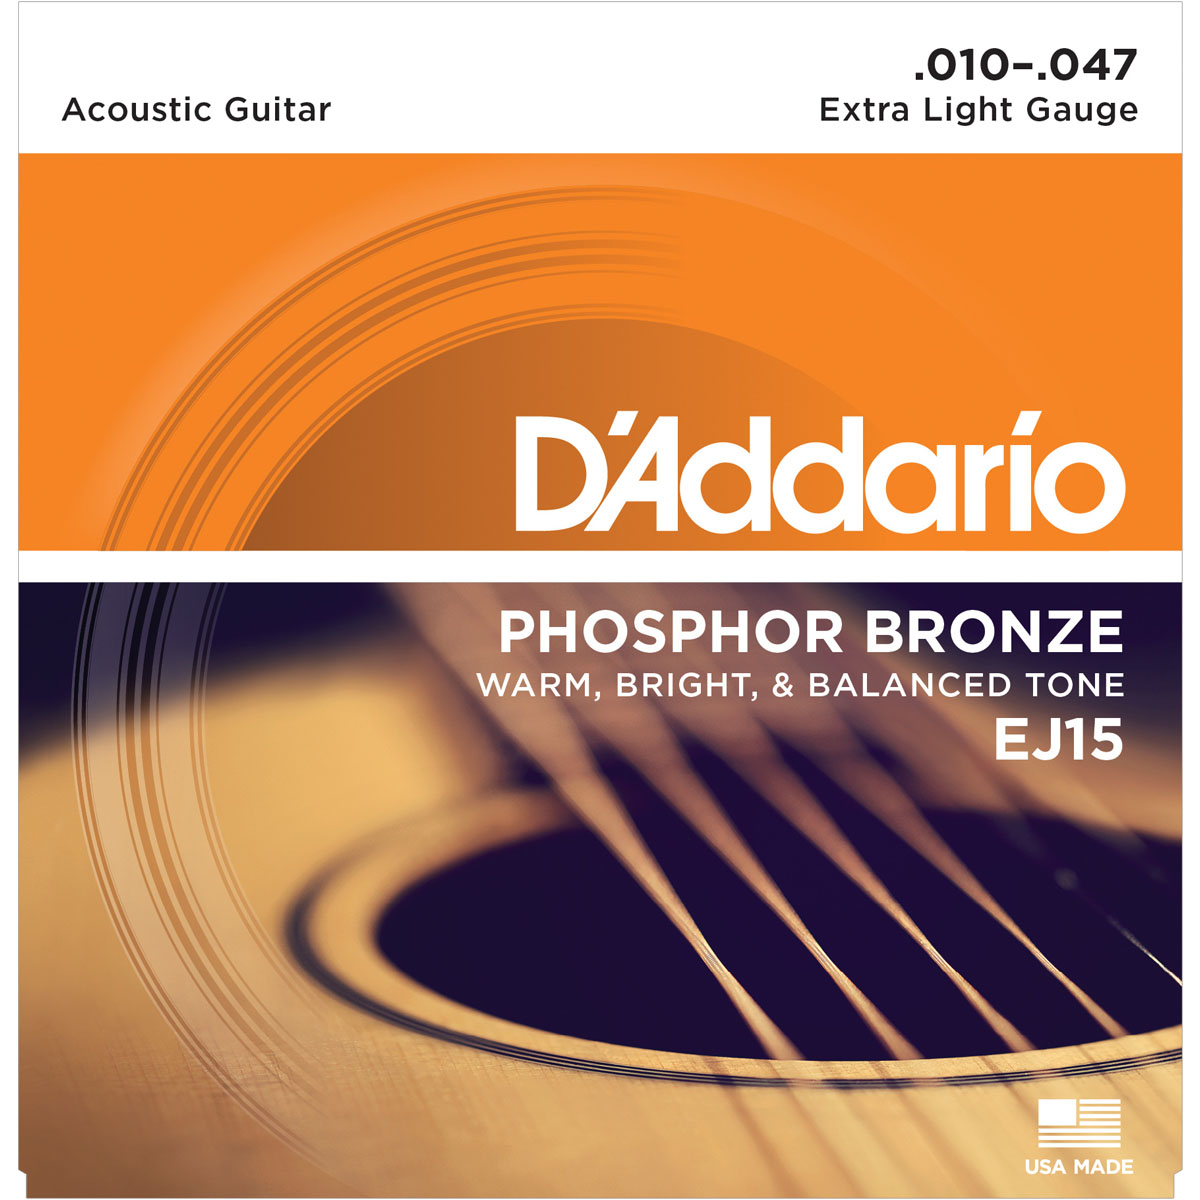 D'Addario EJ15 Acoustic Guitar Strings